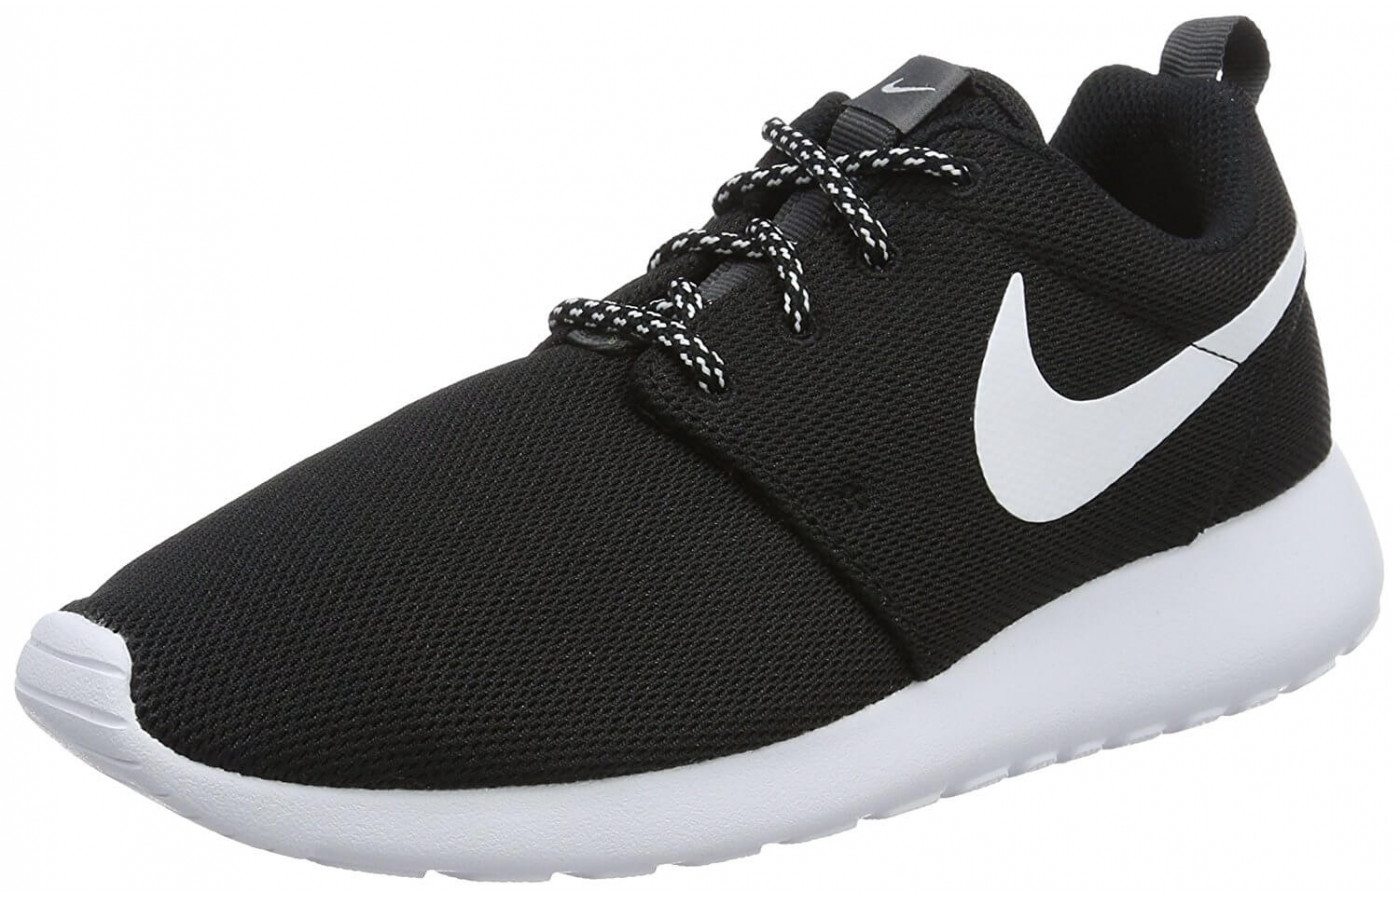 0fe6d92bdbe6 Nike Roshe One Reviewed - To Buy or Not in May 2019